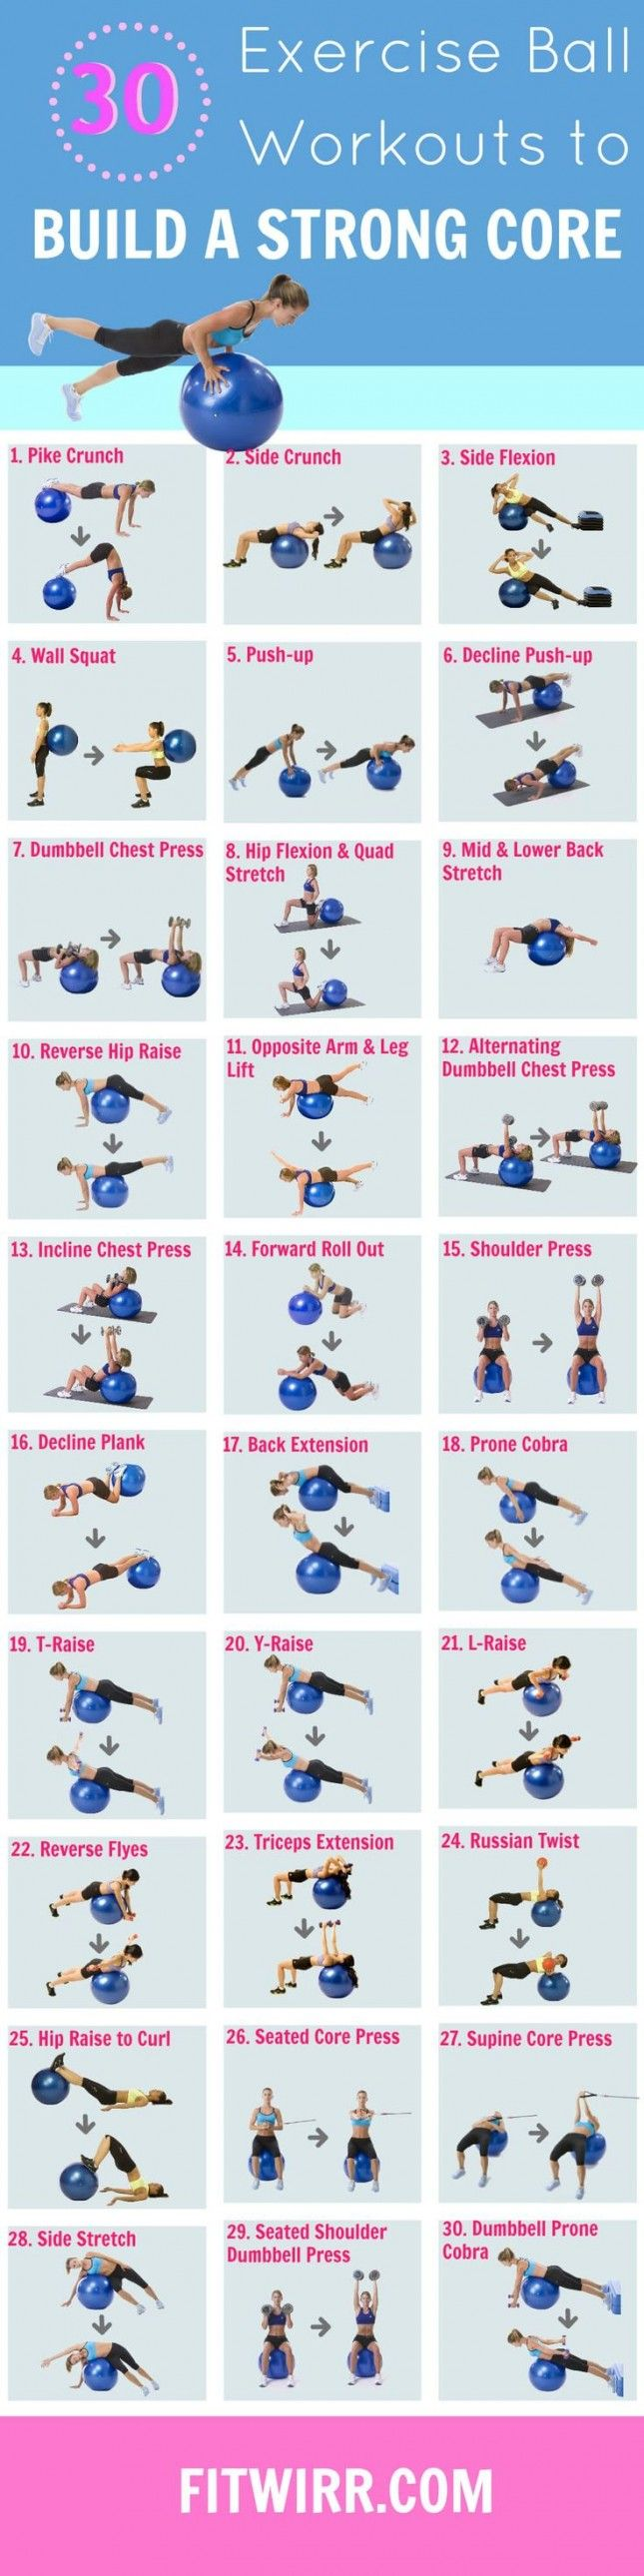 10 Free Printable Workouts To Get Fit Anywhere Fitness Body Best Core Workouts Stability Ball Exercises